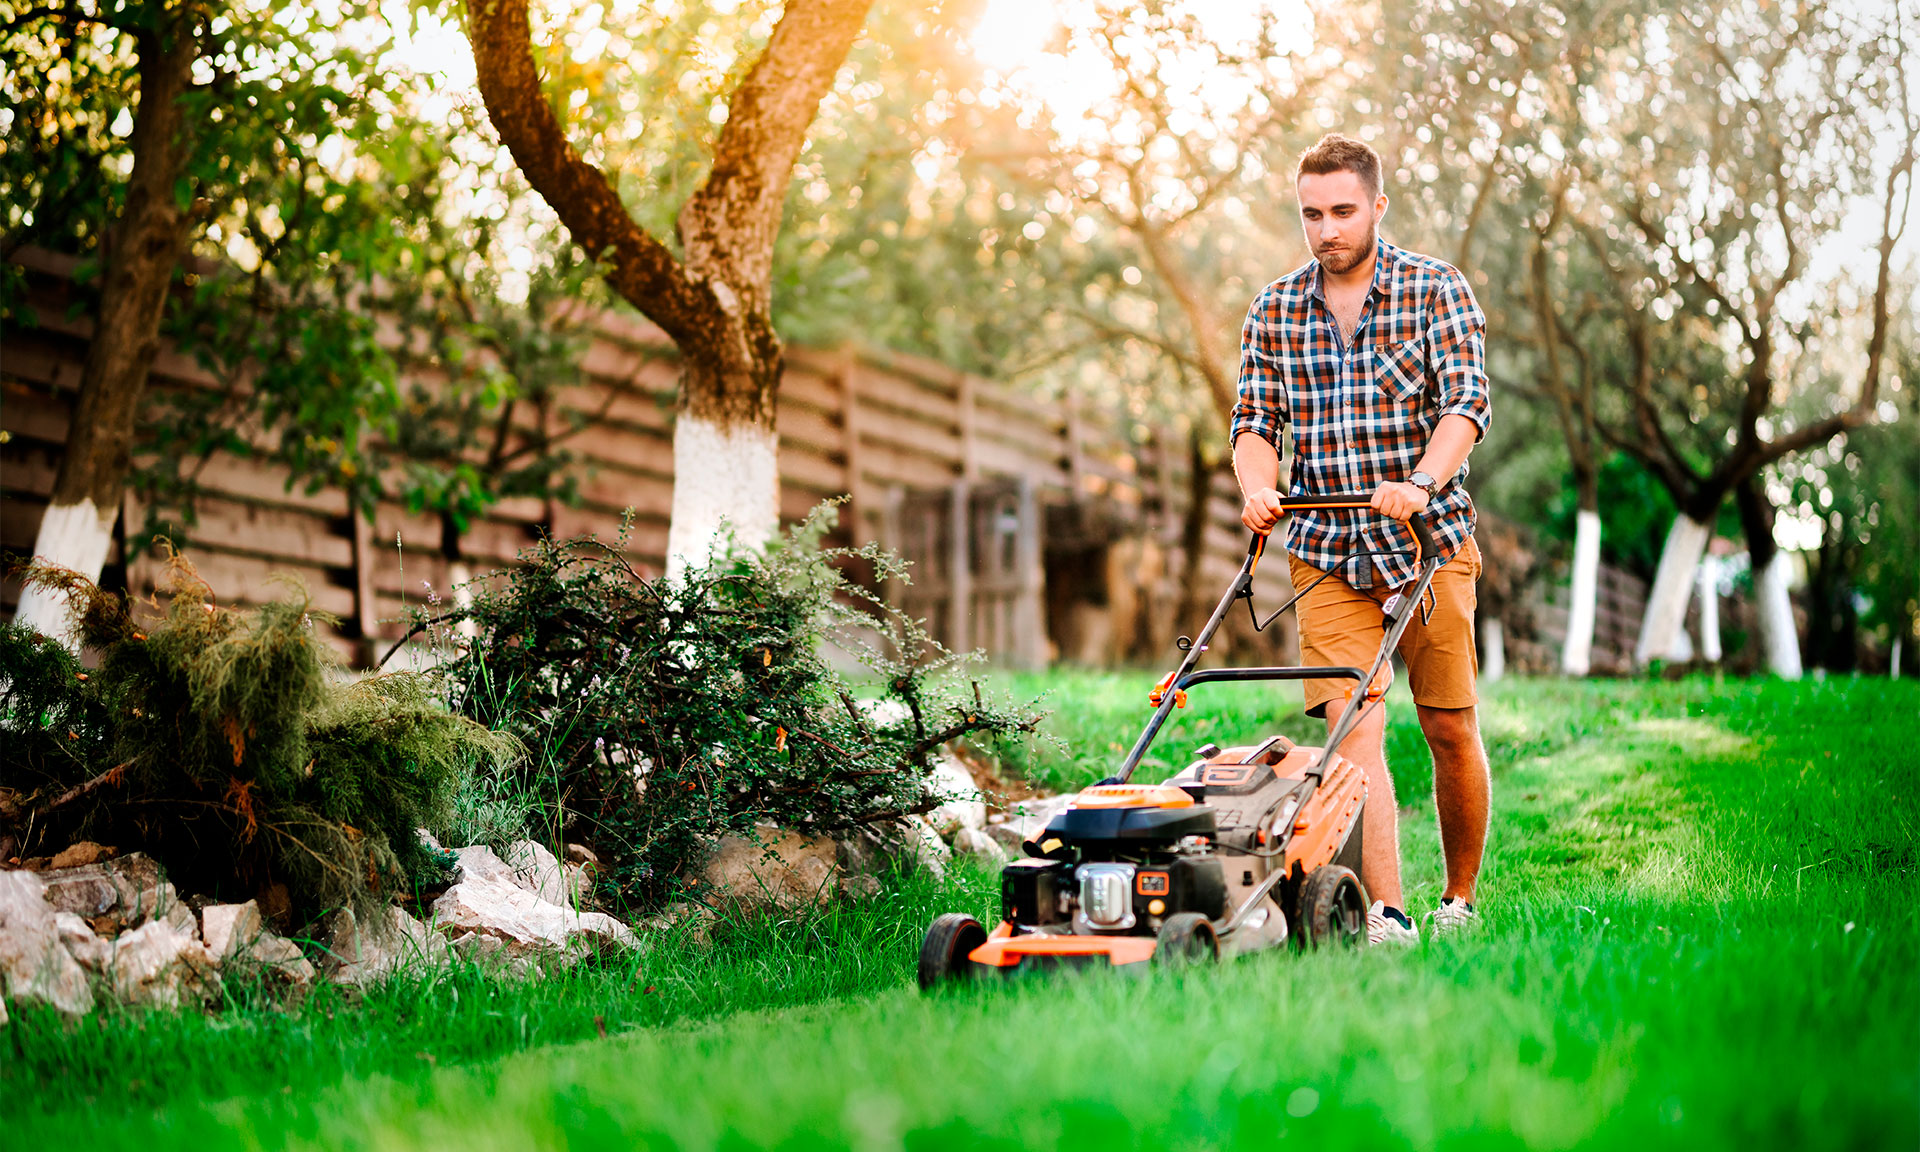 Cordless, petrol or electric - which type of lawn mower can you rely on? – Which? News